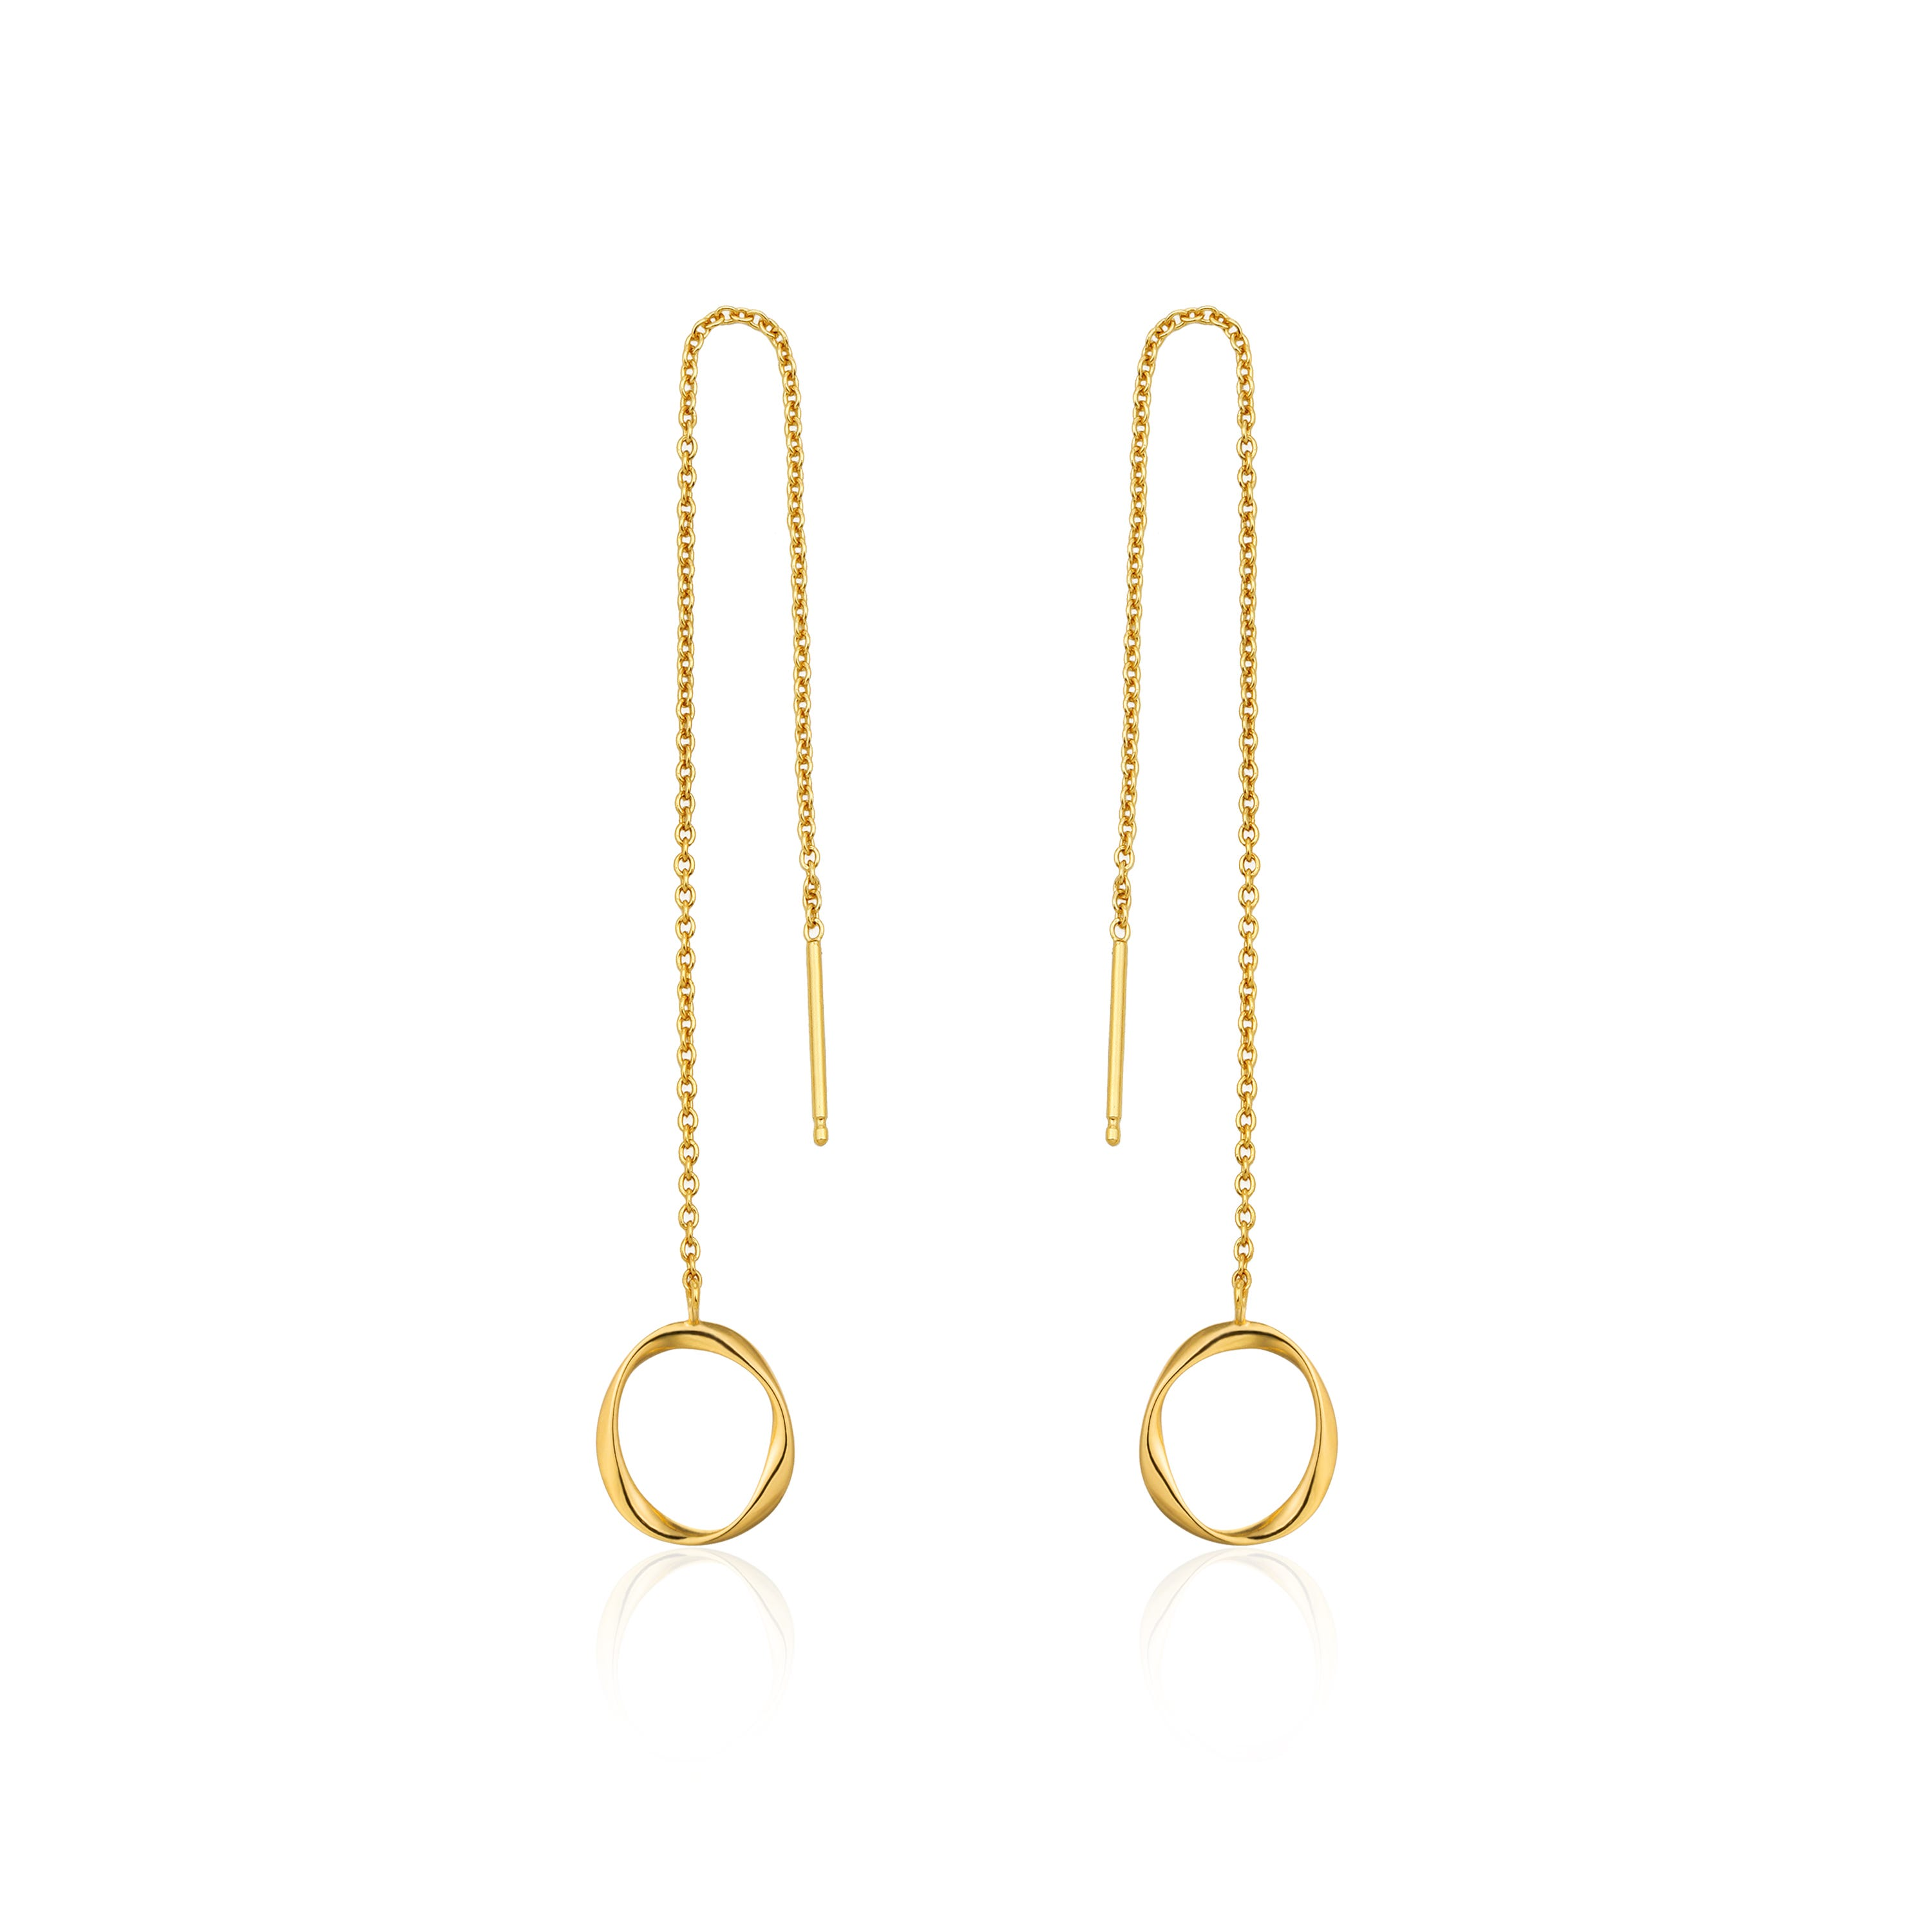 Swirl Threader Earrings in Sterling Silver/Gold Plated